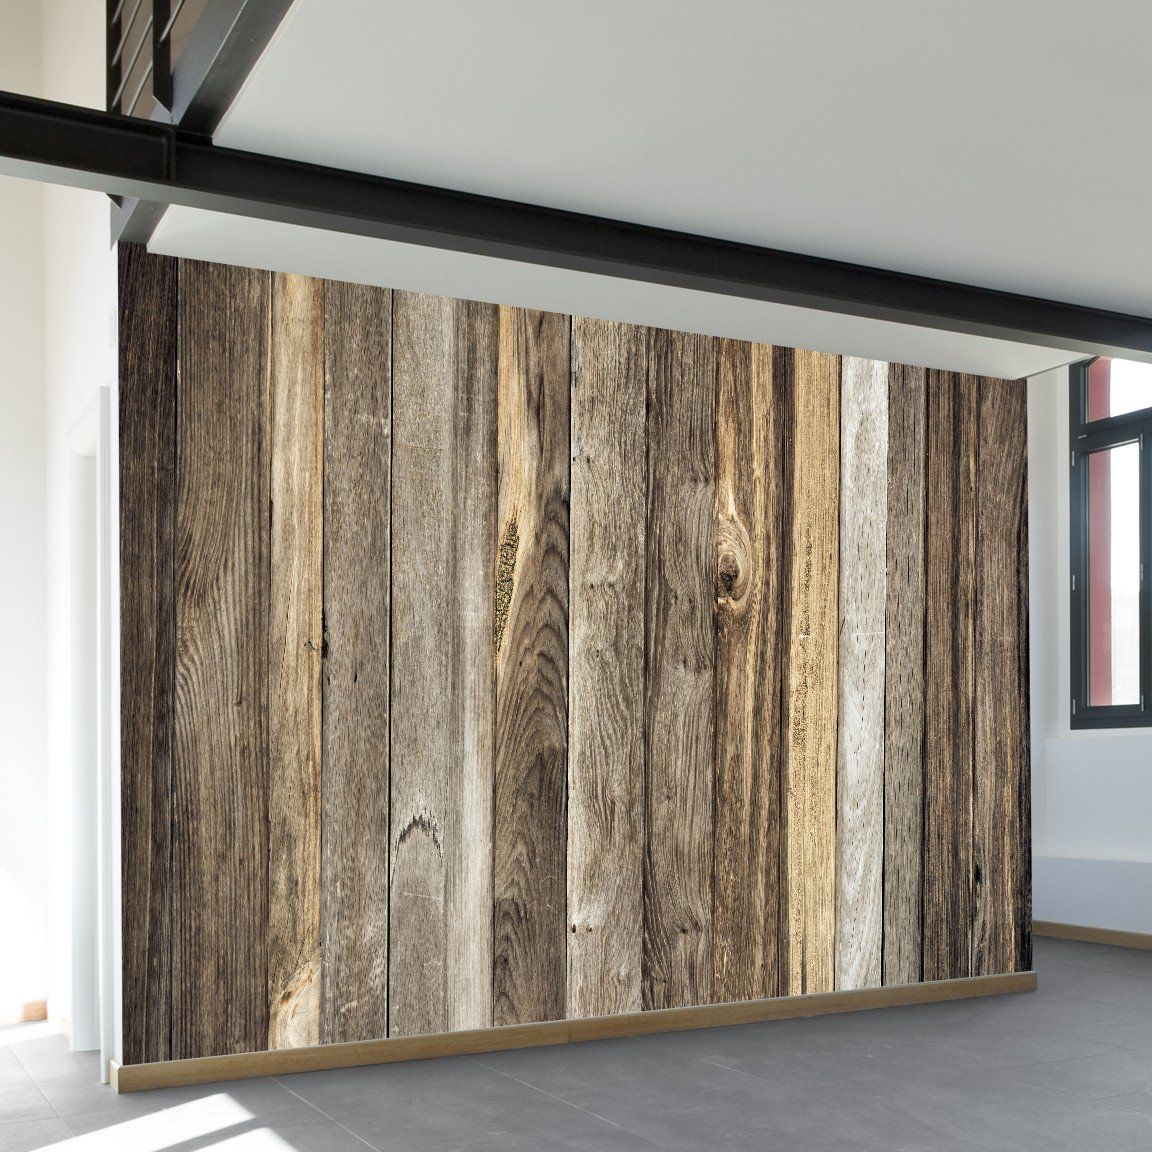 Wall Murals From Wallsneedlove Lifestyle Rustic Wood Walls Barnwood Wall Barn Wood Wall Decor